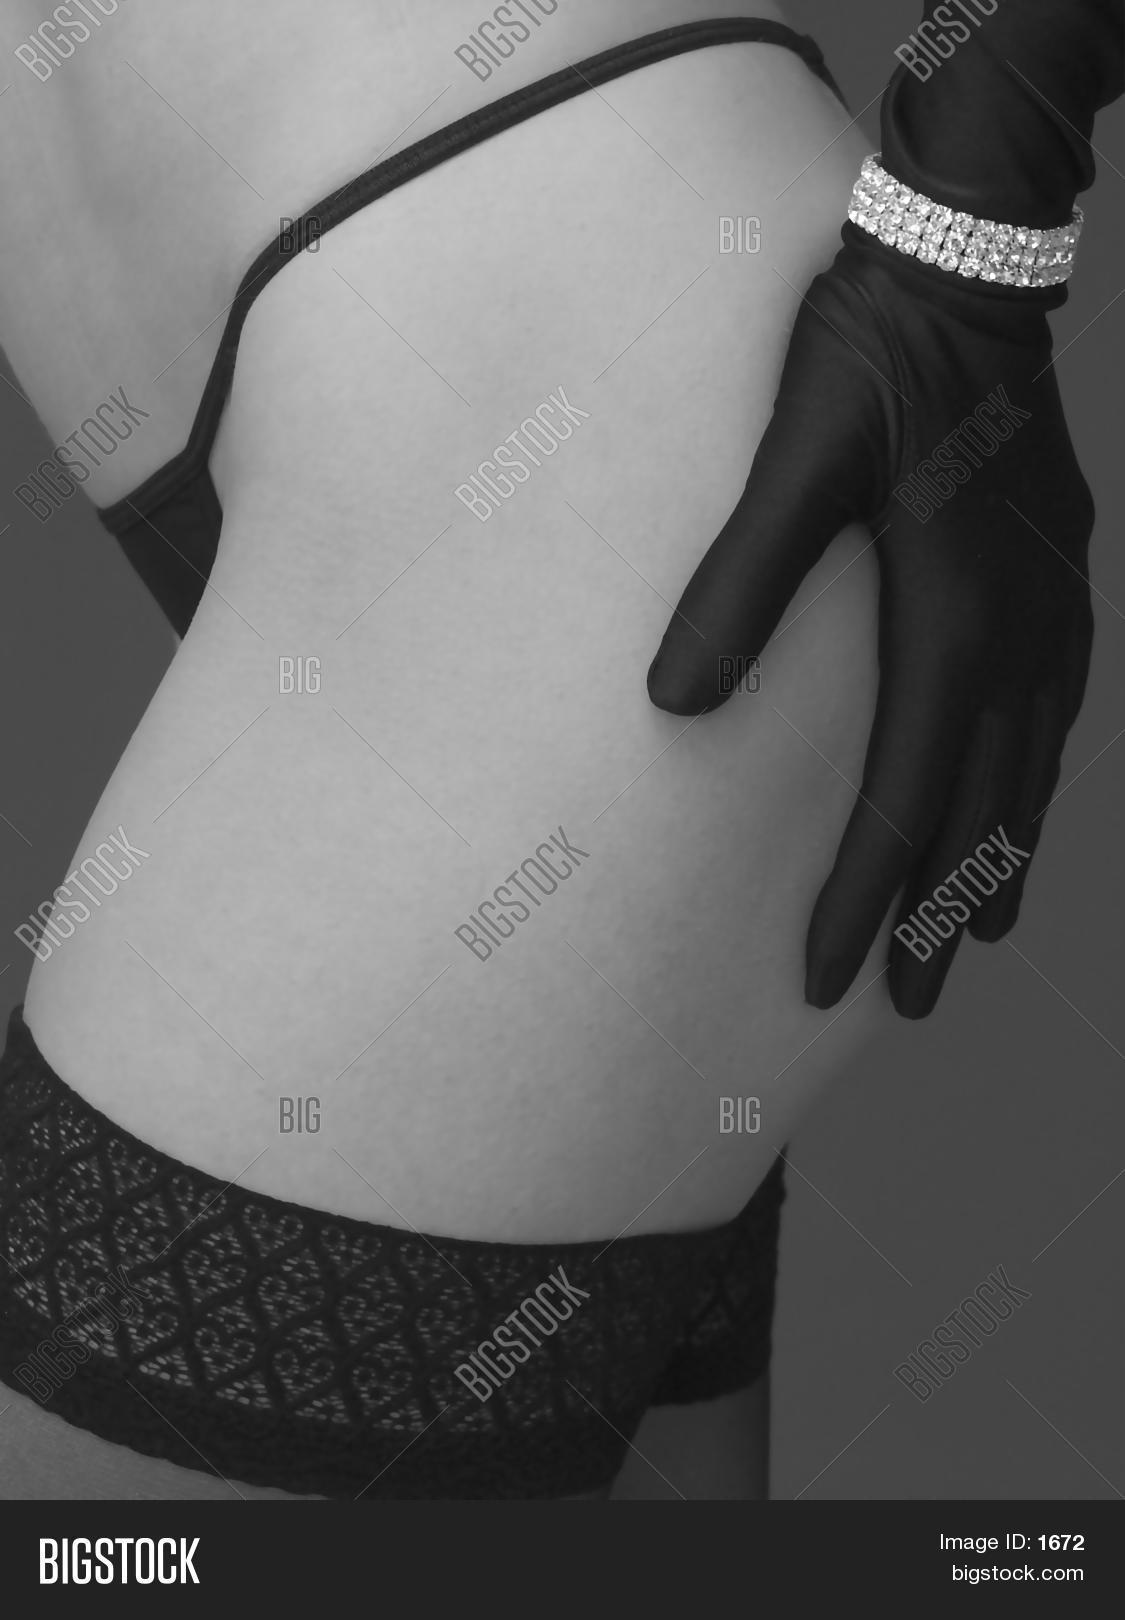 Stocking Tops Image & Photo (Free Trial) | Bigstock